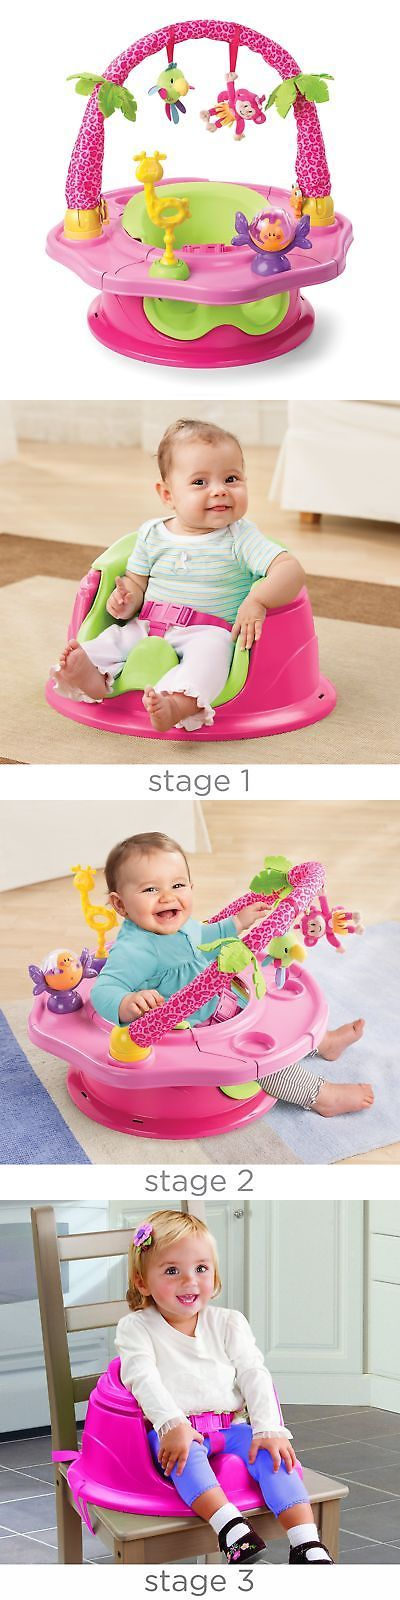 Activity Centers 20413: Pink 3-In-1 Activity Seat Baby Walker Toddler Chair Toy Playground Cup Eat Table -> BUY IT NOW ONLY: $49.29 on eBay!